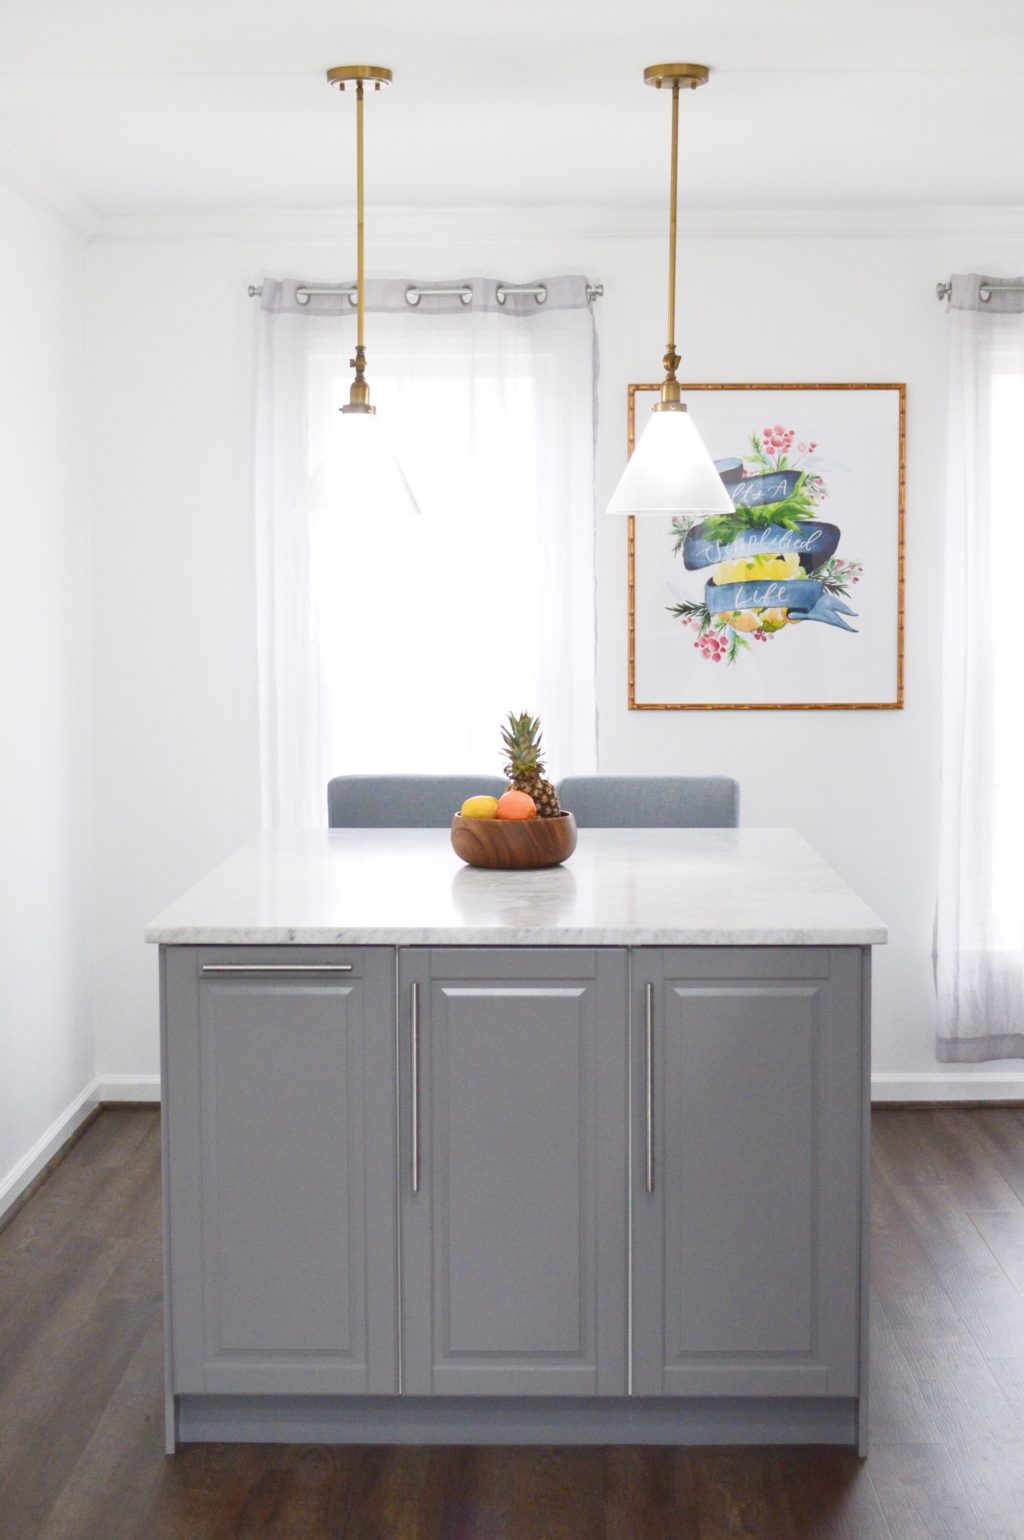 Our Kitchen Renovation: Before and After! | Whitney Blake